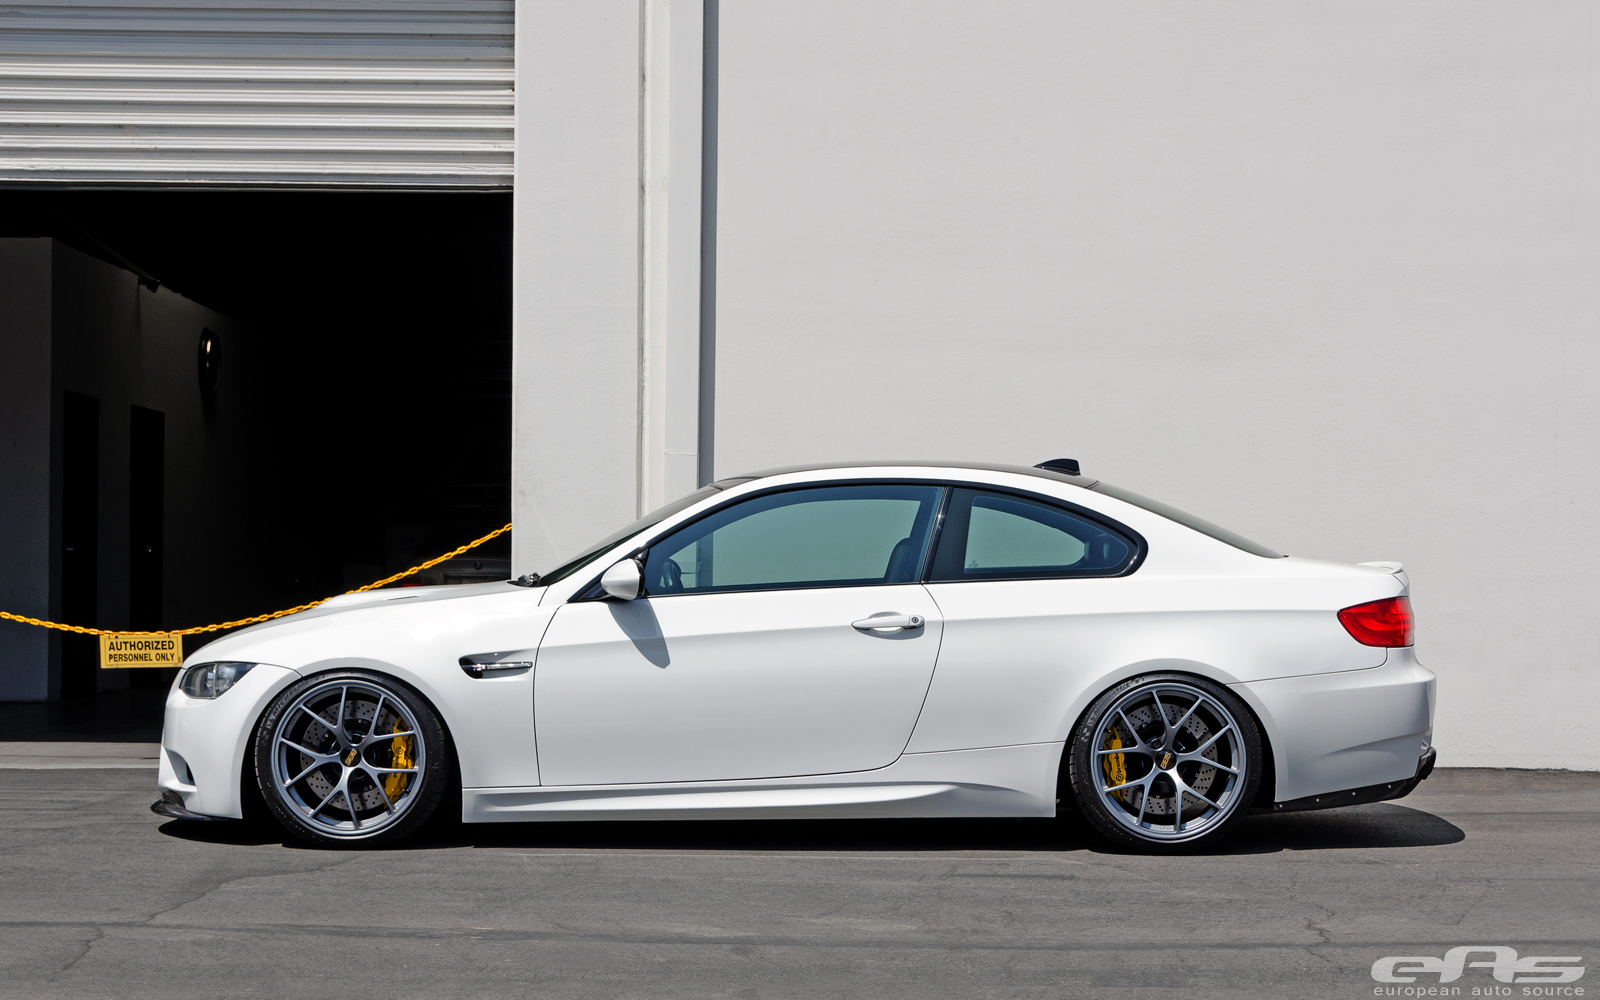 Alpine White Bmw E92 M3 Gets Slammed At Eas Autoevolution